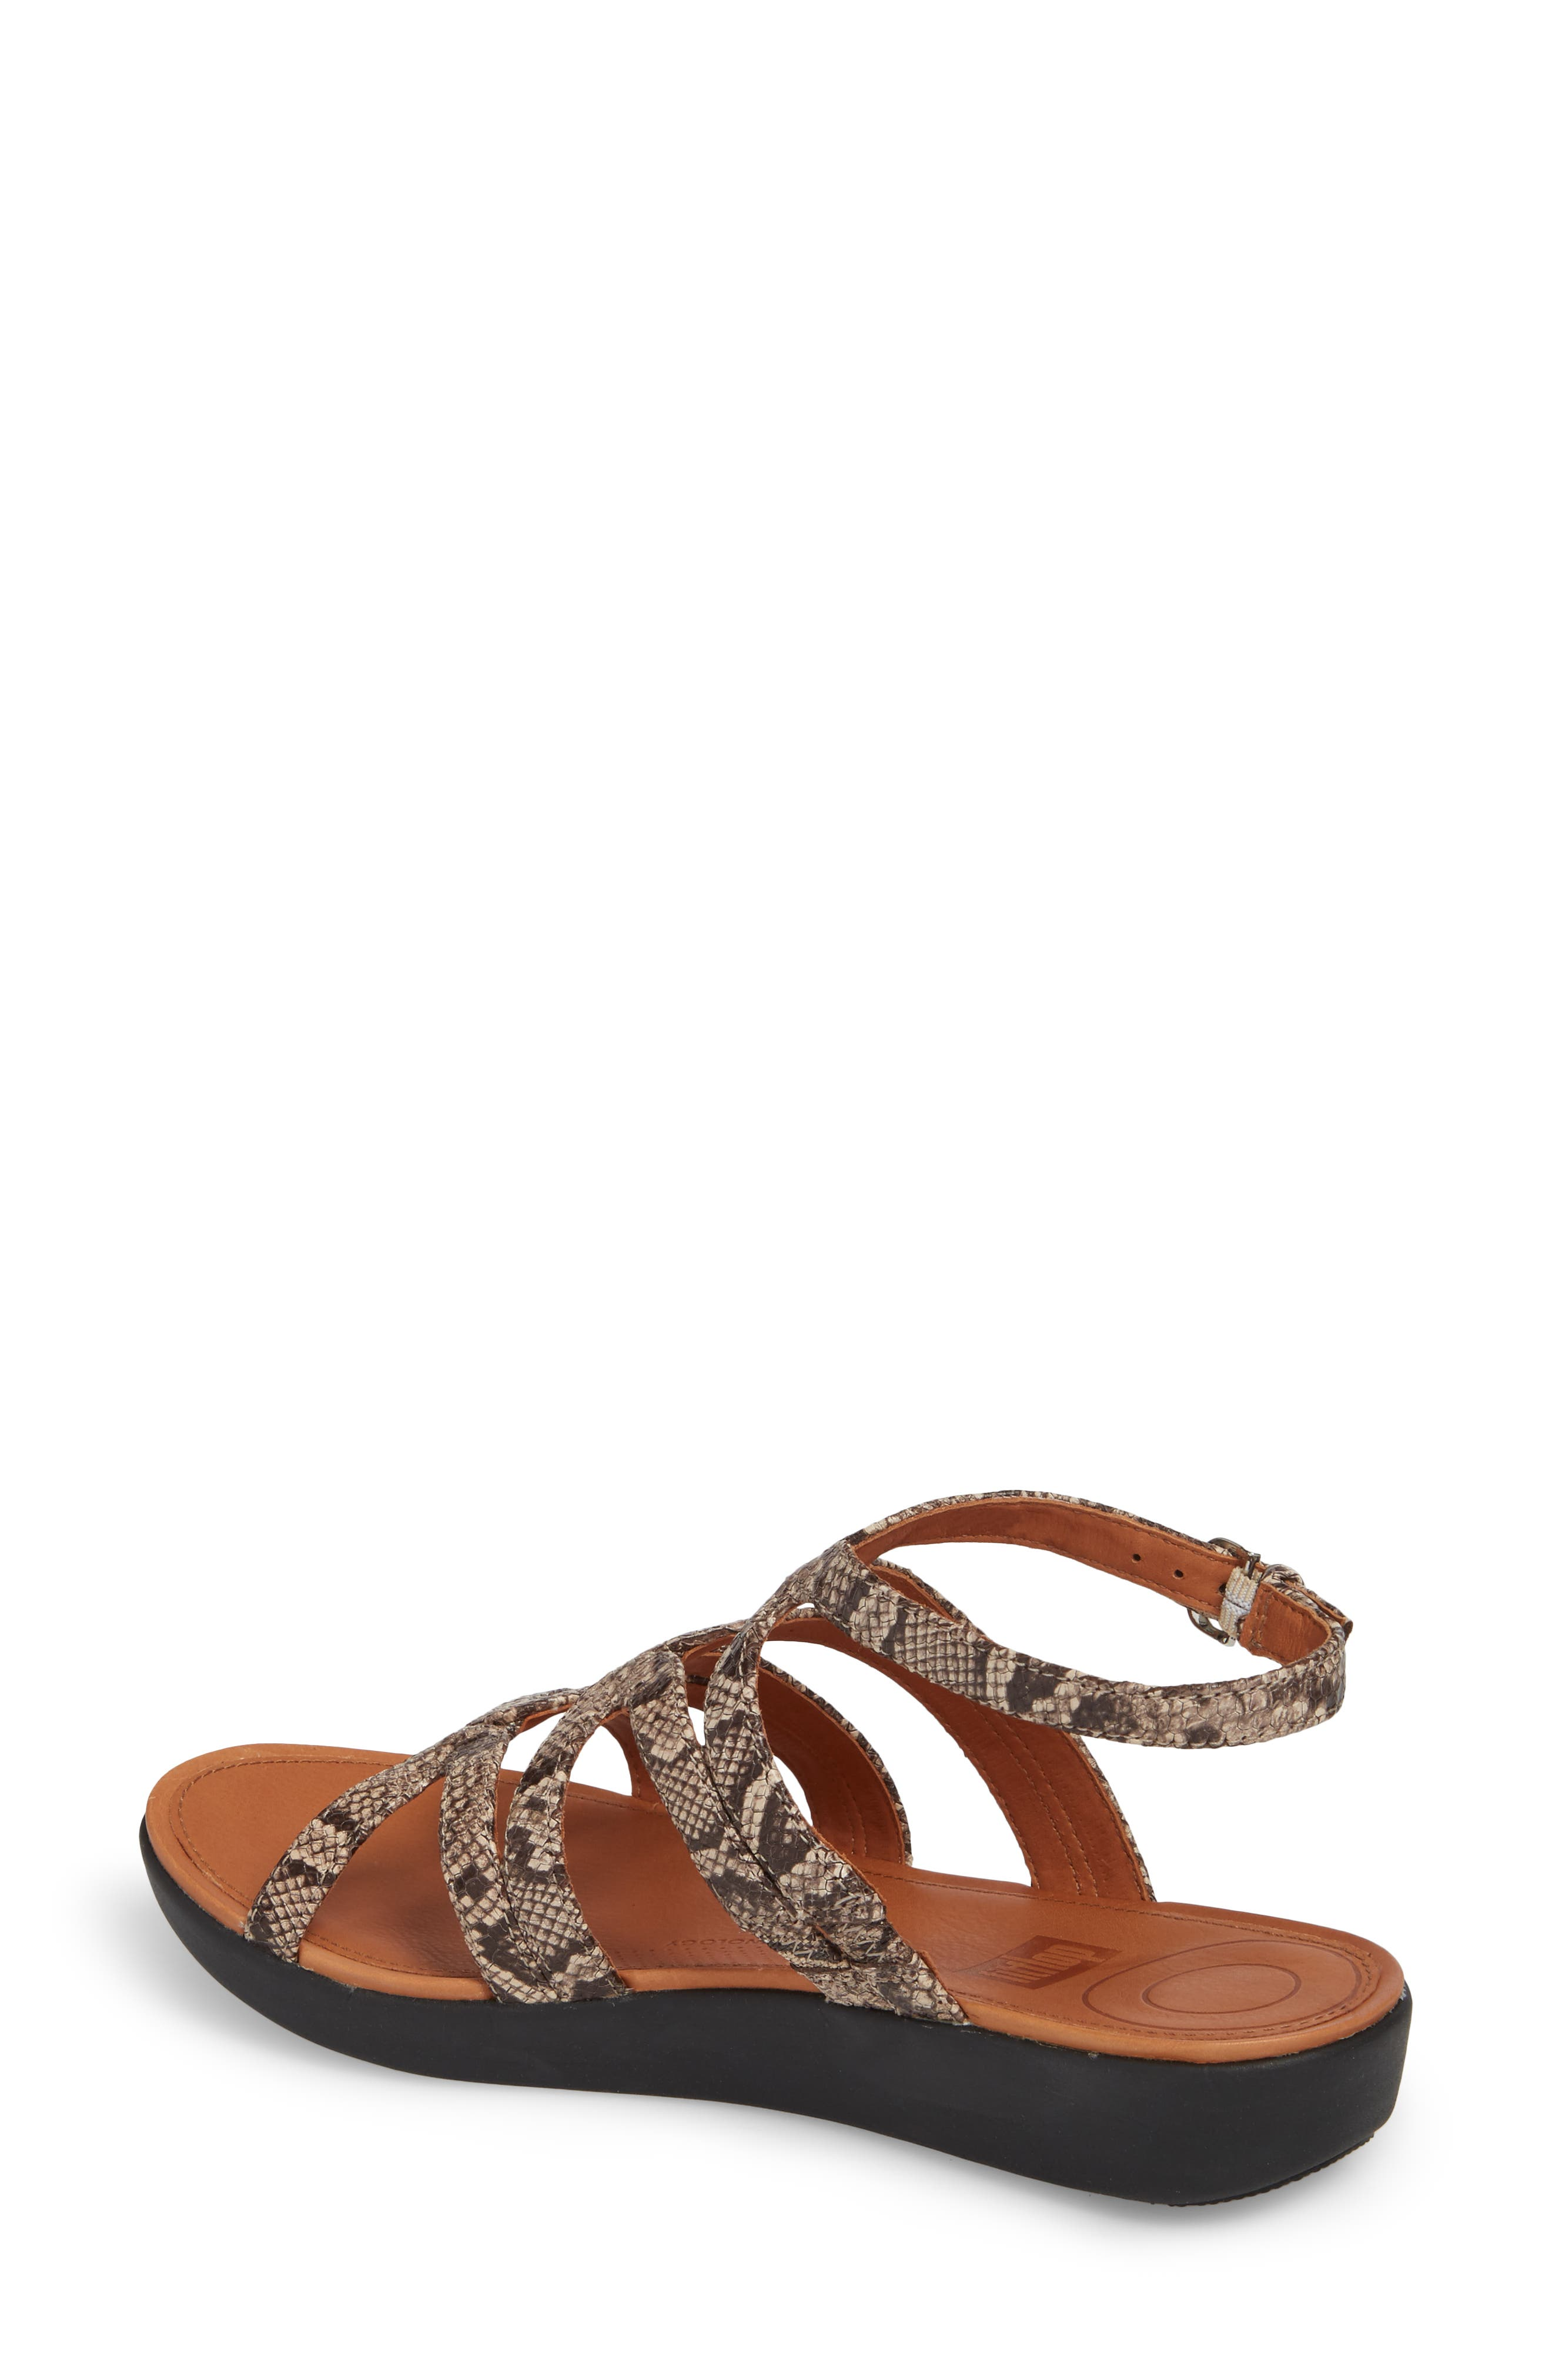 Strata Gladiator Sandal,                             Alternate thumbnail 4, color,